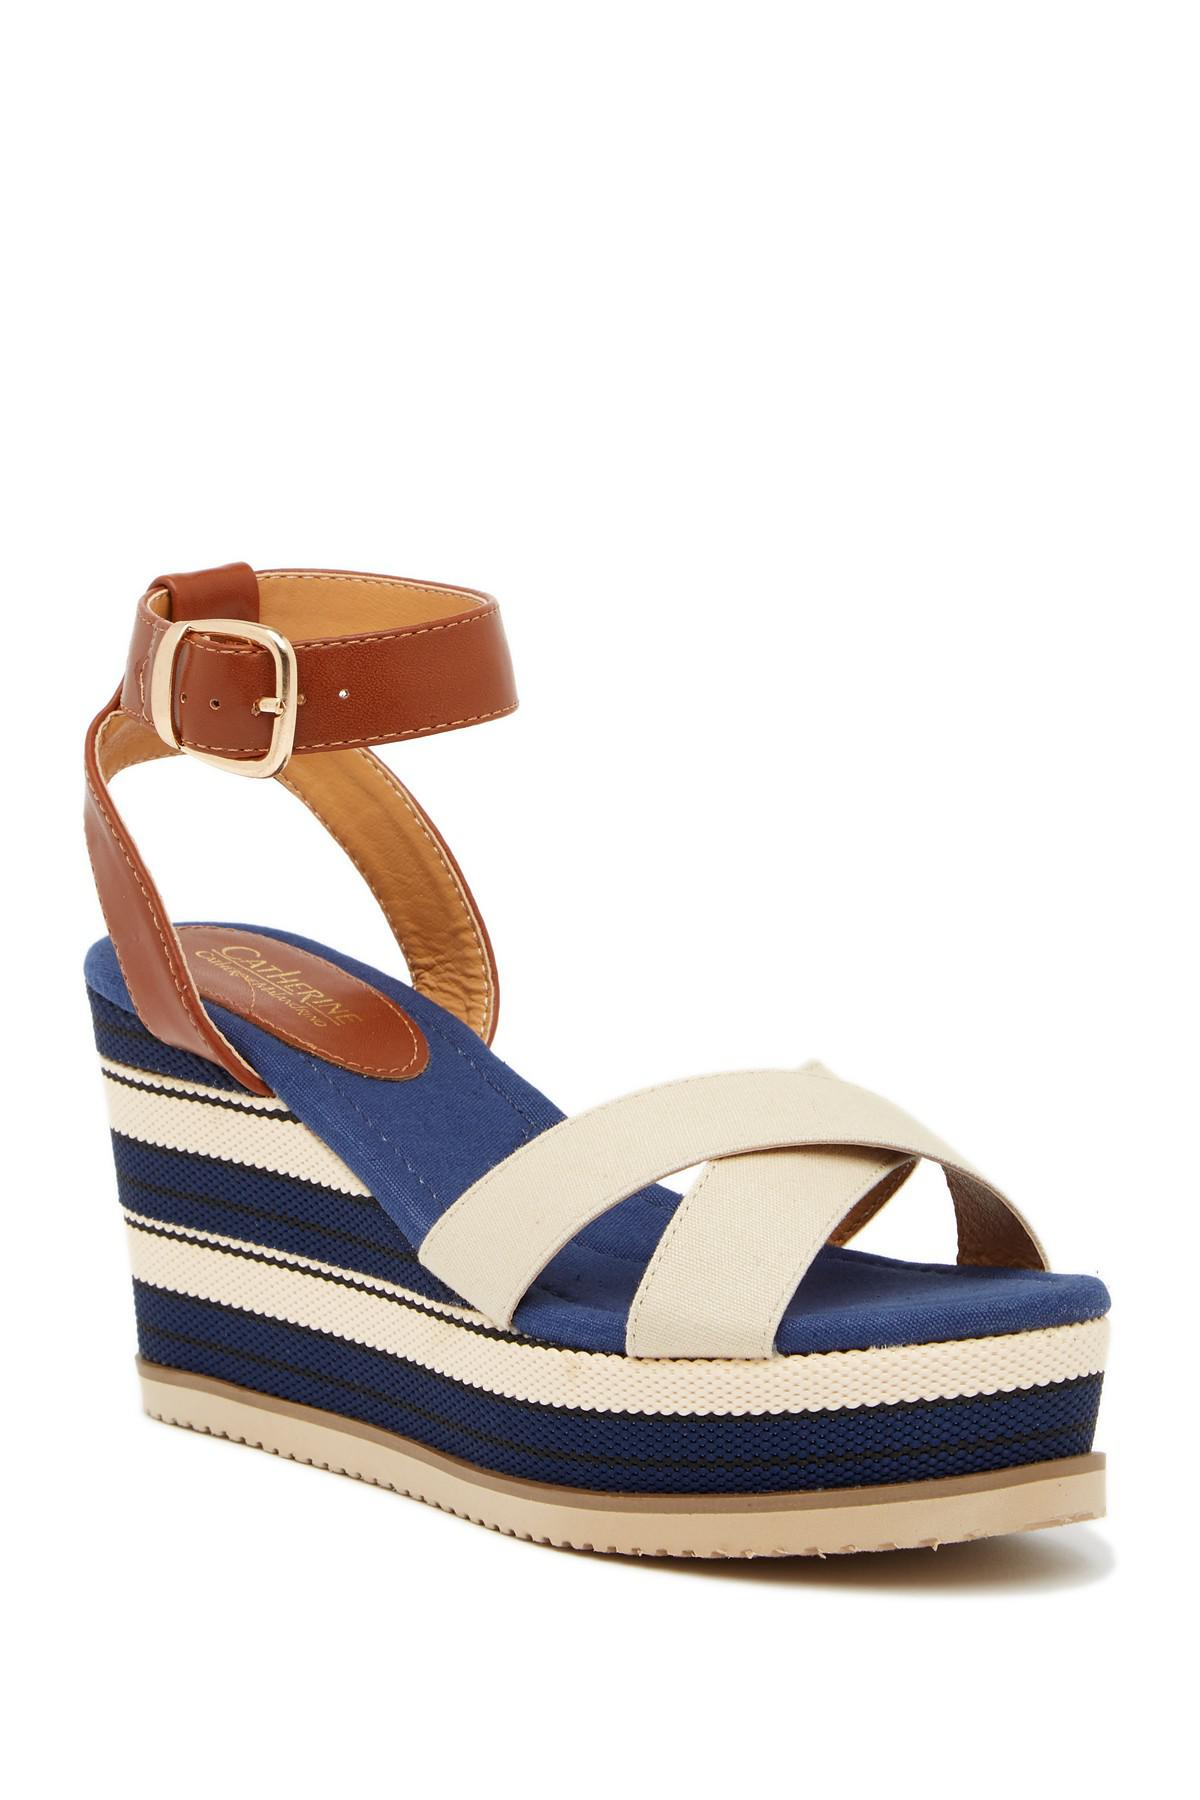 MSGM Donna Platform Sandals w/ Tags cheap for cheap cheap sale 2014 new really cheap online SXqnX